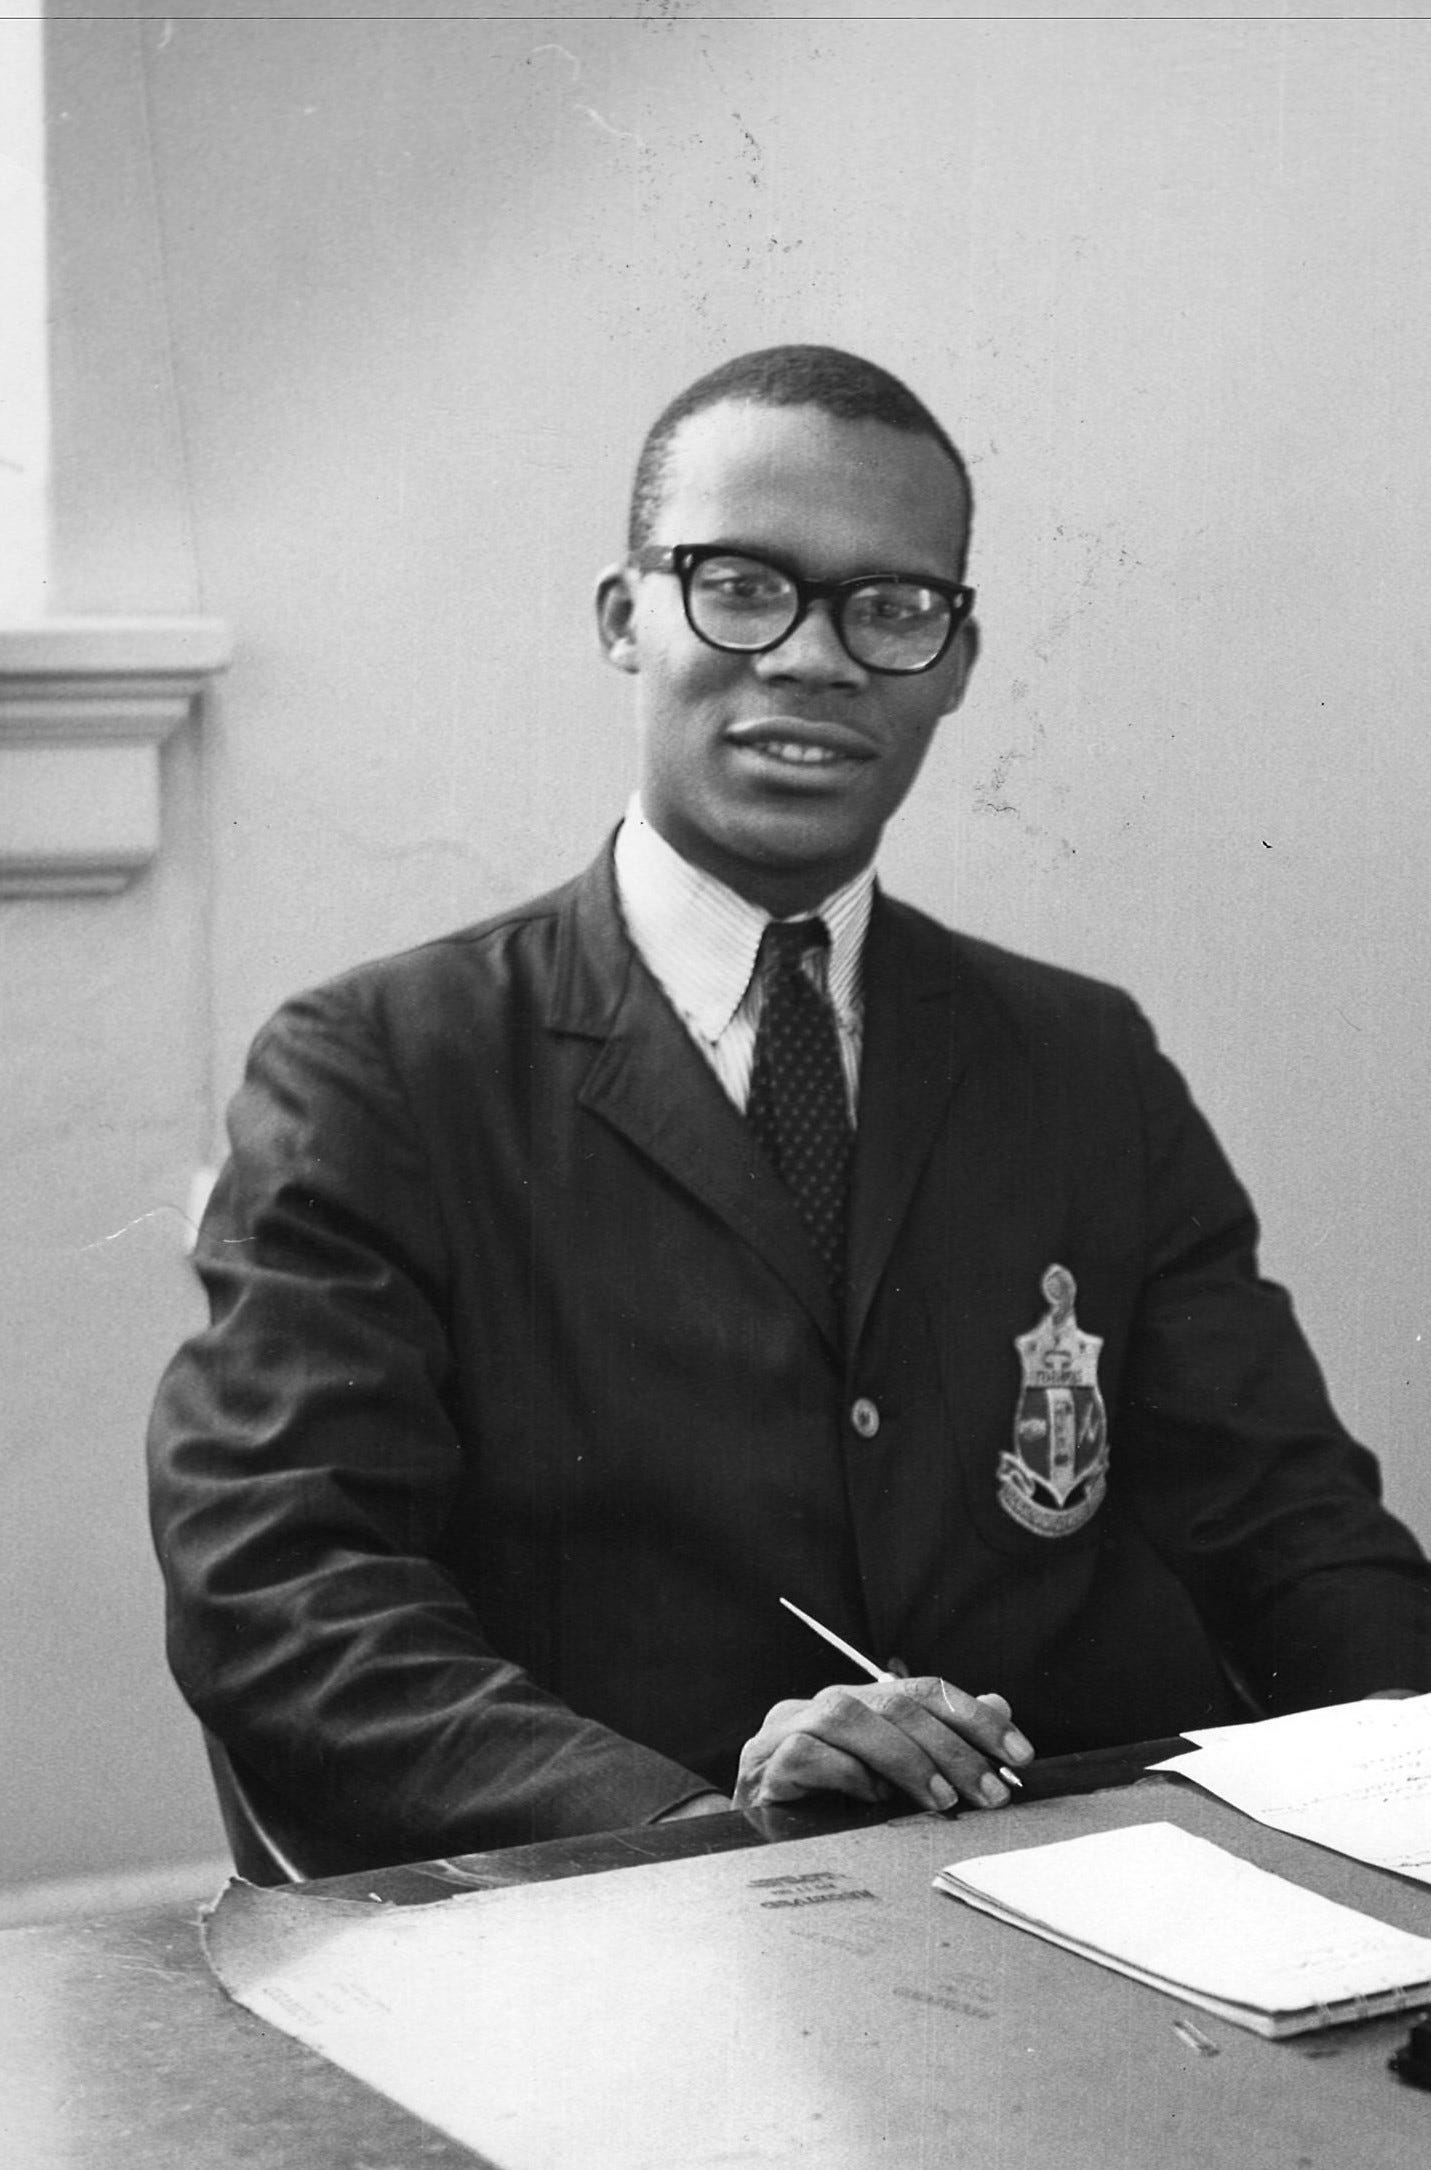 Larry Gibson as a student at Howard University. Gibson was a Howard University sophomore when he and his classmates participated in the November 1961 sit-ins being conducted throughout Anne Arundel County as part of the Route 40 desegregation campaign in Maryland. Two years later, he would be Howard student body president.